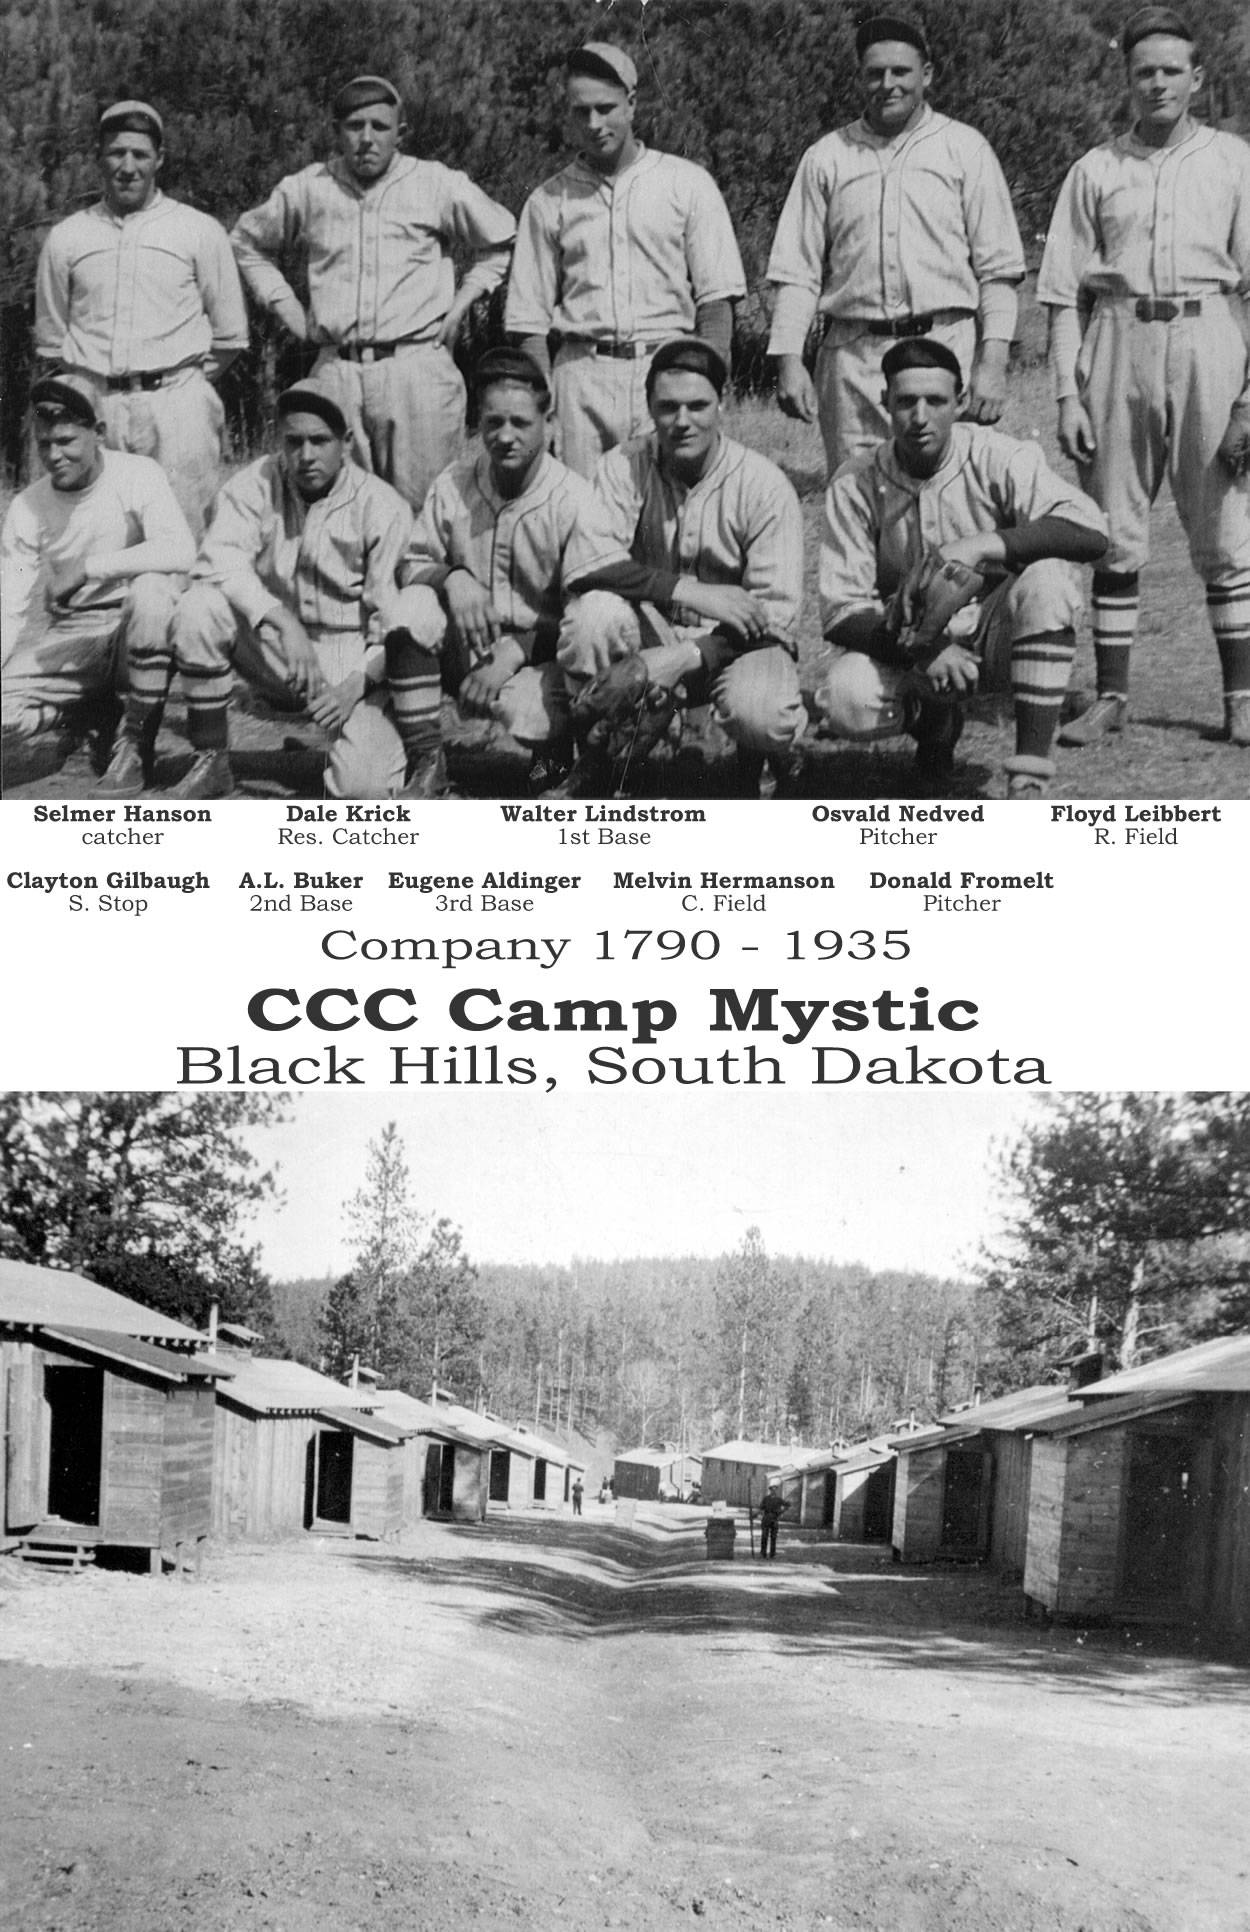 CCC Camp Mystic Baseball Team